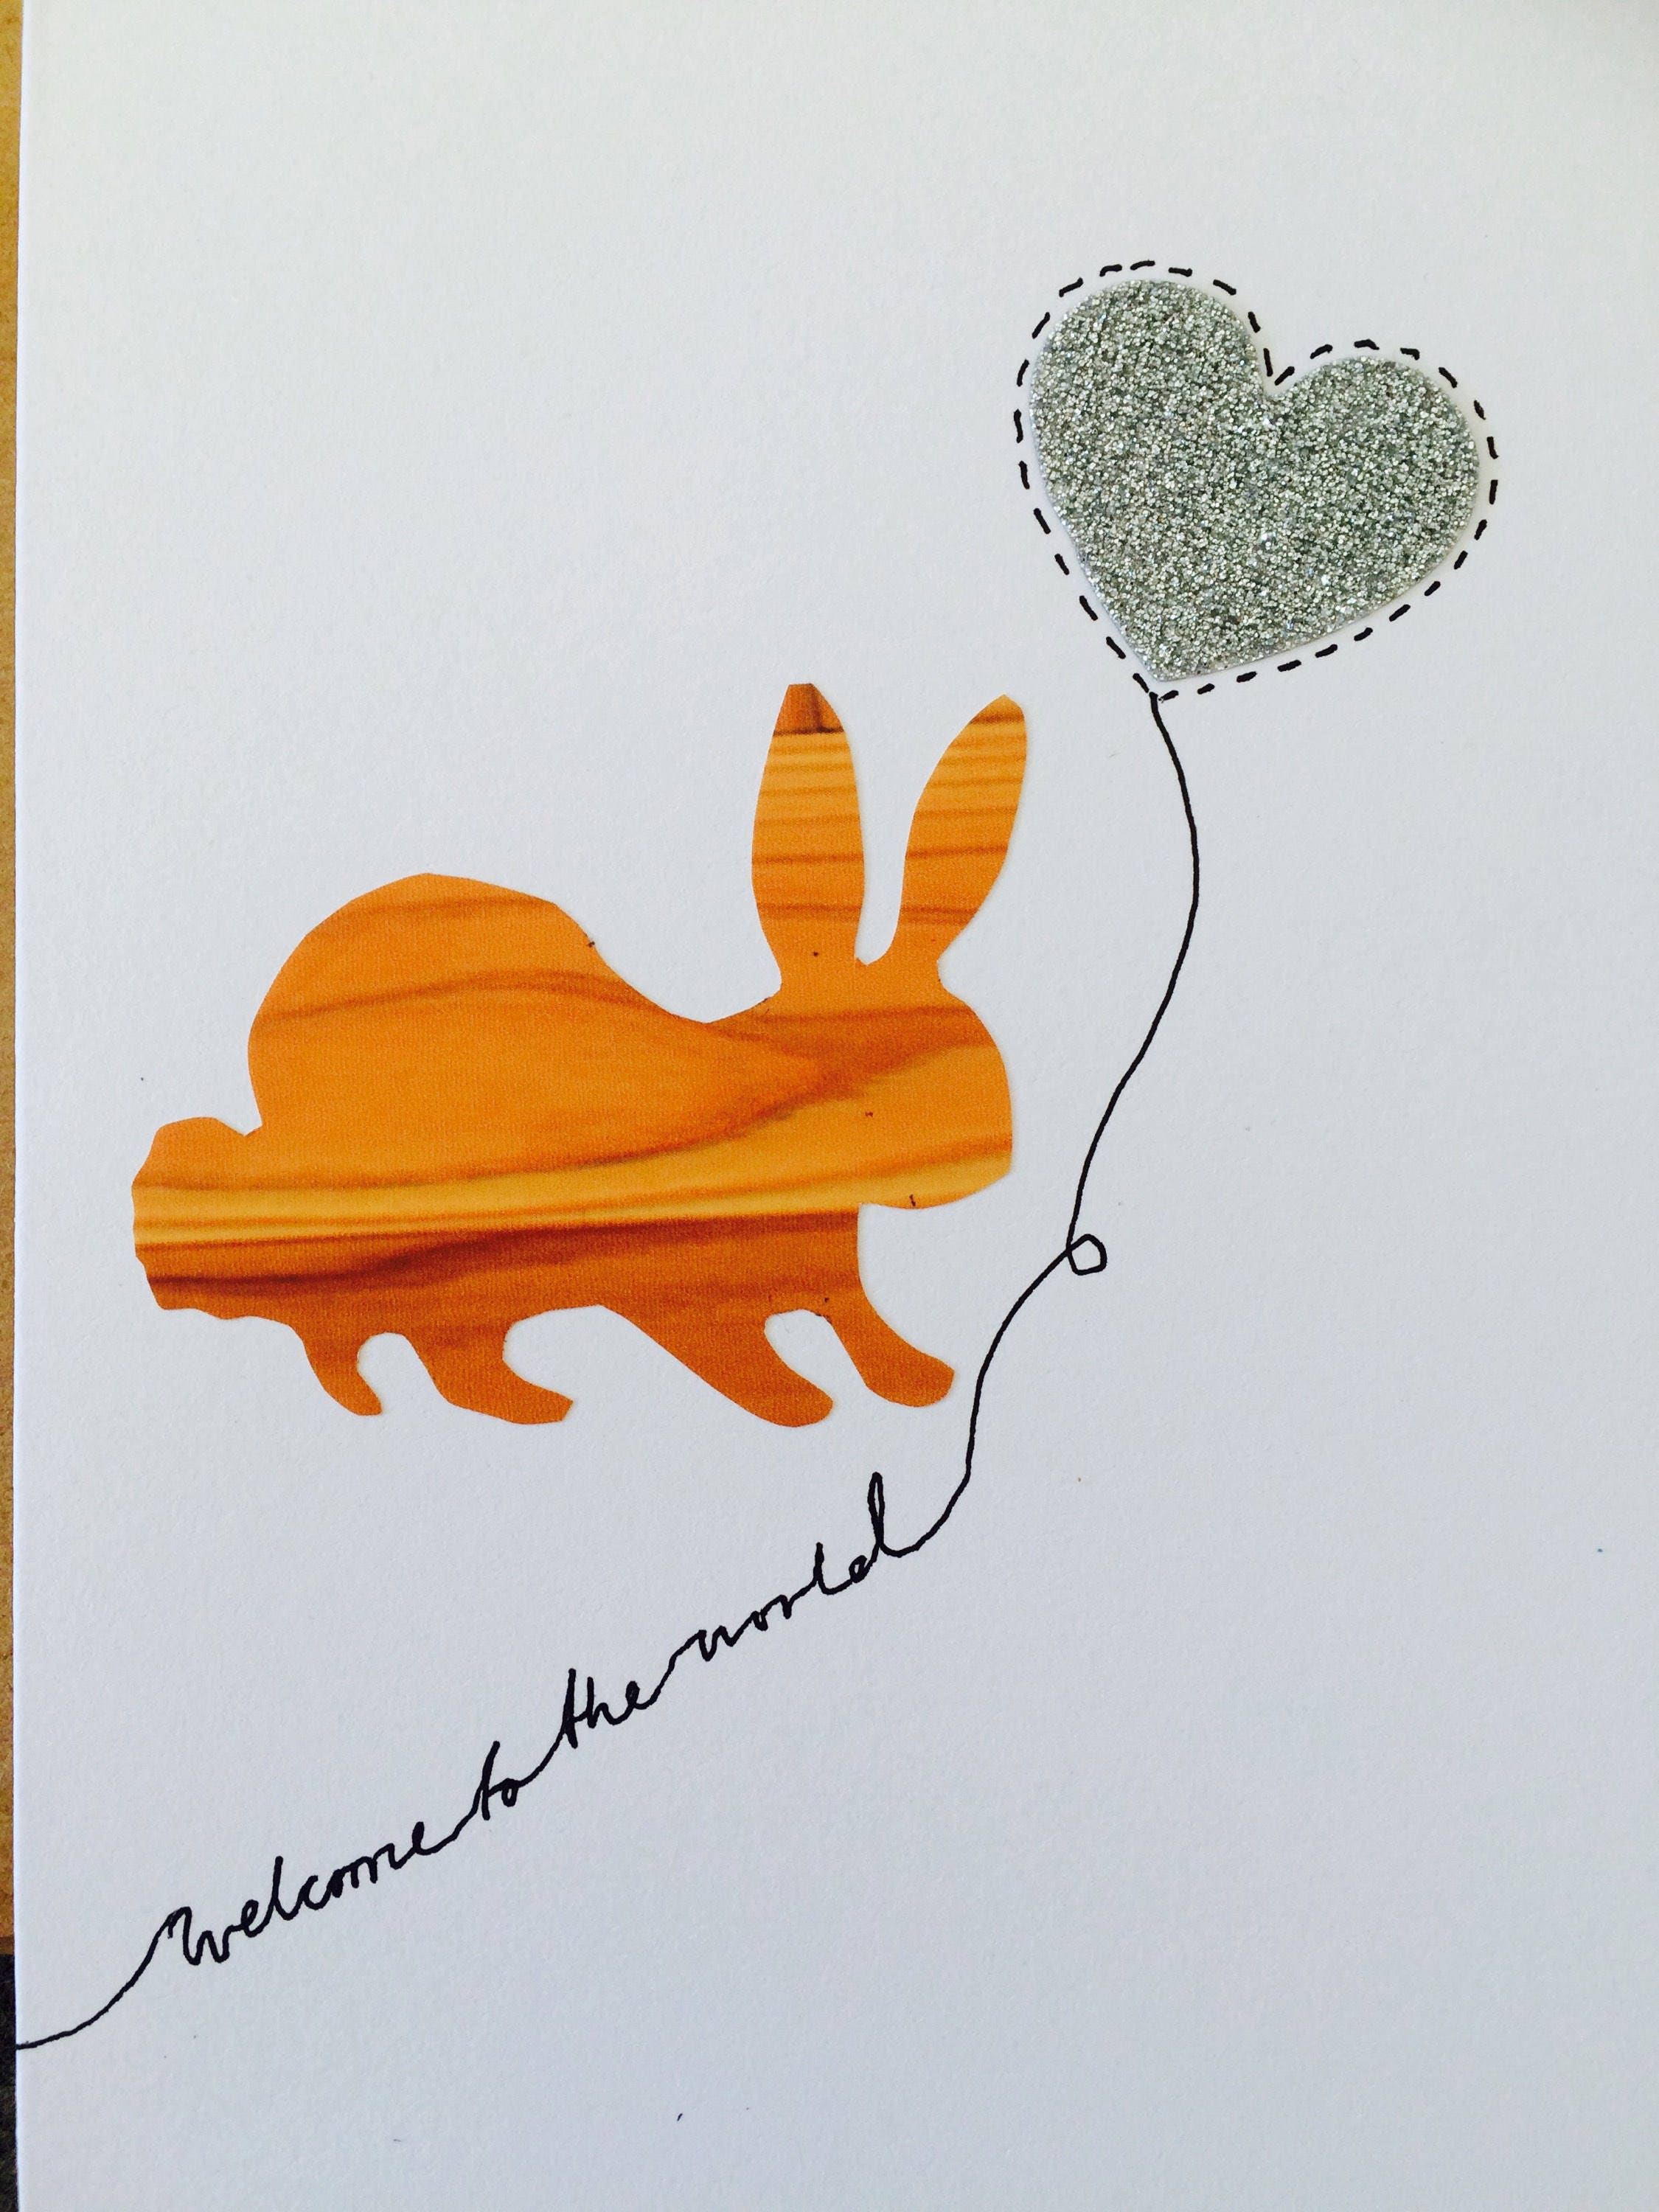 Wooden rabbit new baby greetings card silver glitter heart wooden rabbit new baby greetings card silver glitter heart kristyandbryce Gallery